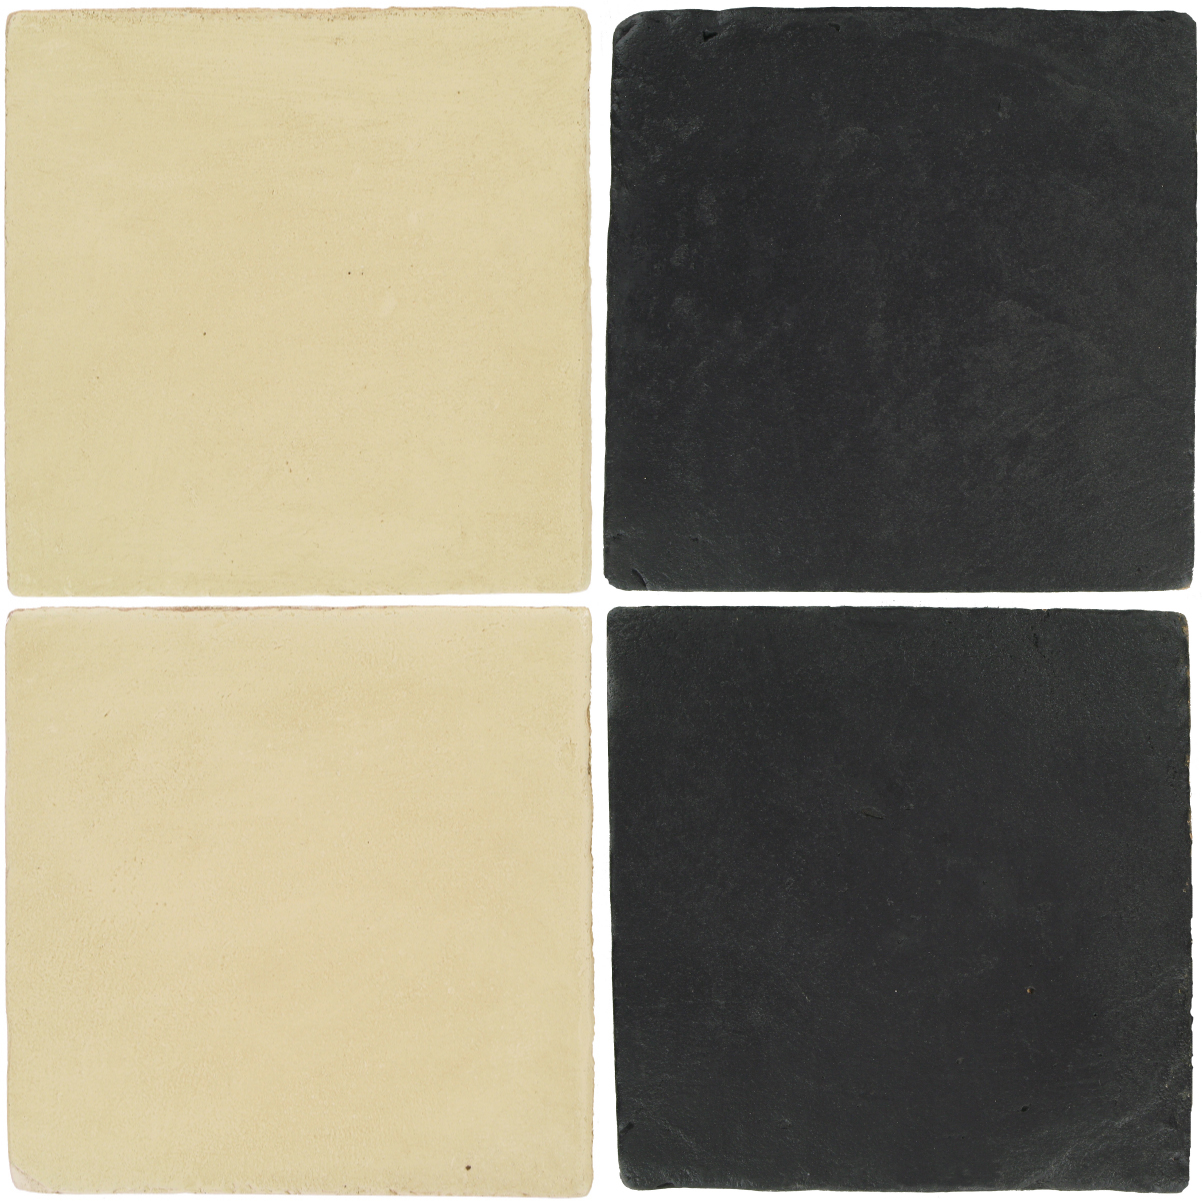 Pedralbes Antique Terracotta  2 Color Combinations  OHS-PGPW Pergamino White + VTG-PGCB Carbon Black